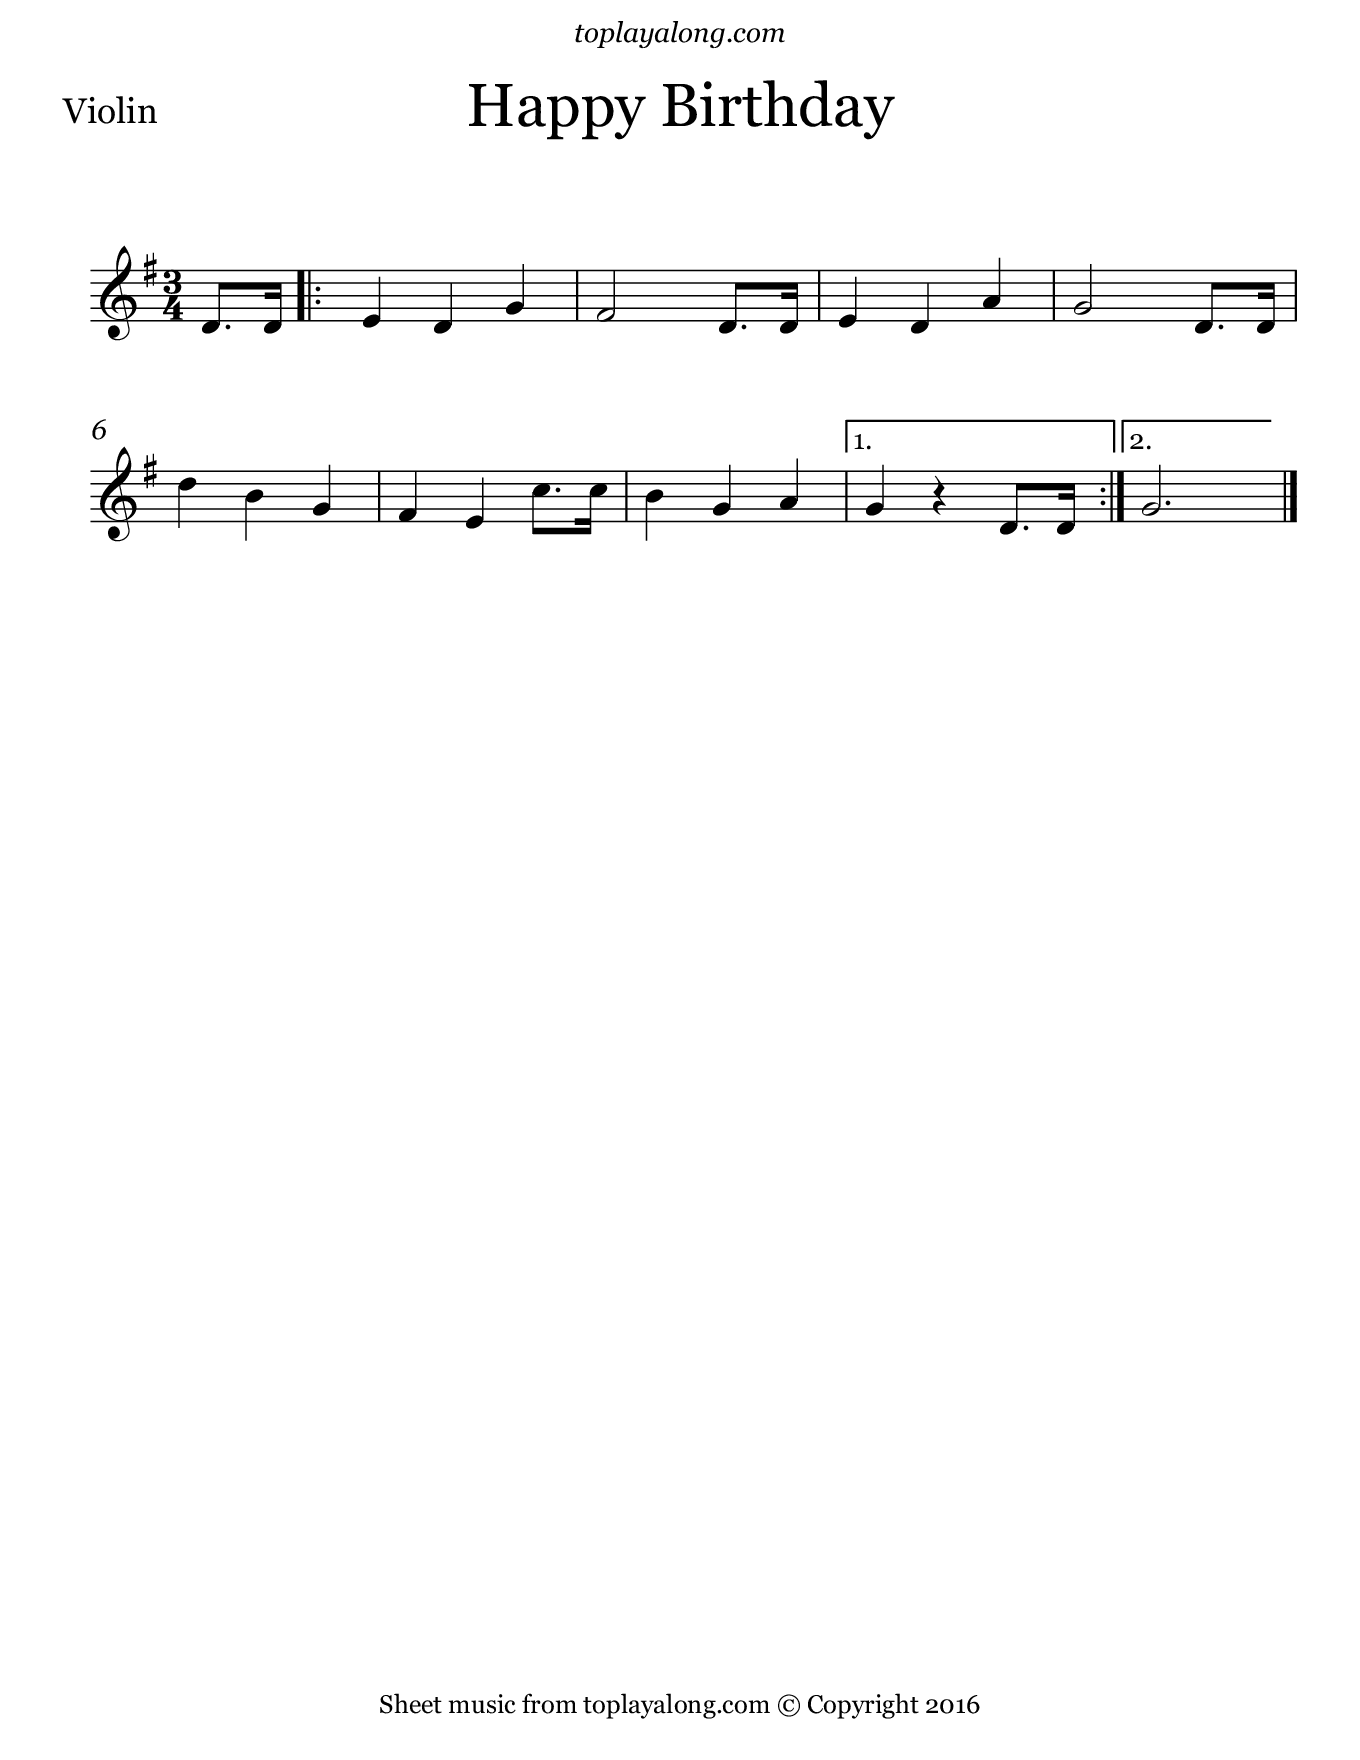 Happy Birthday. Sheet music for Violin, page 1.